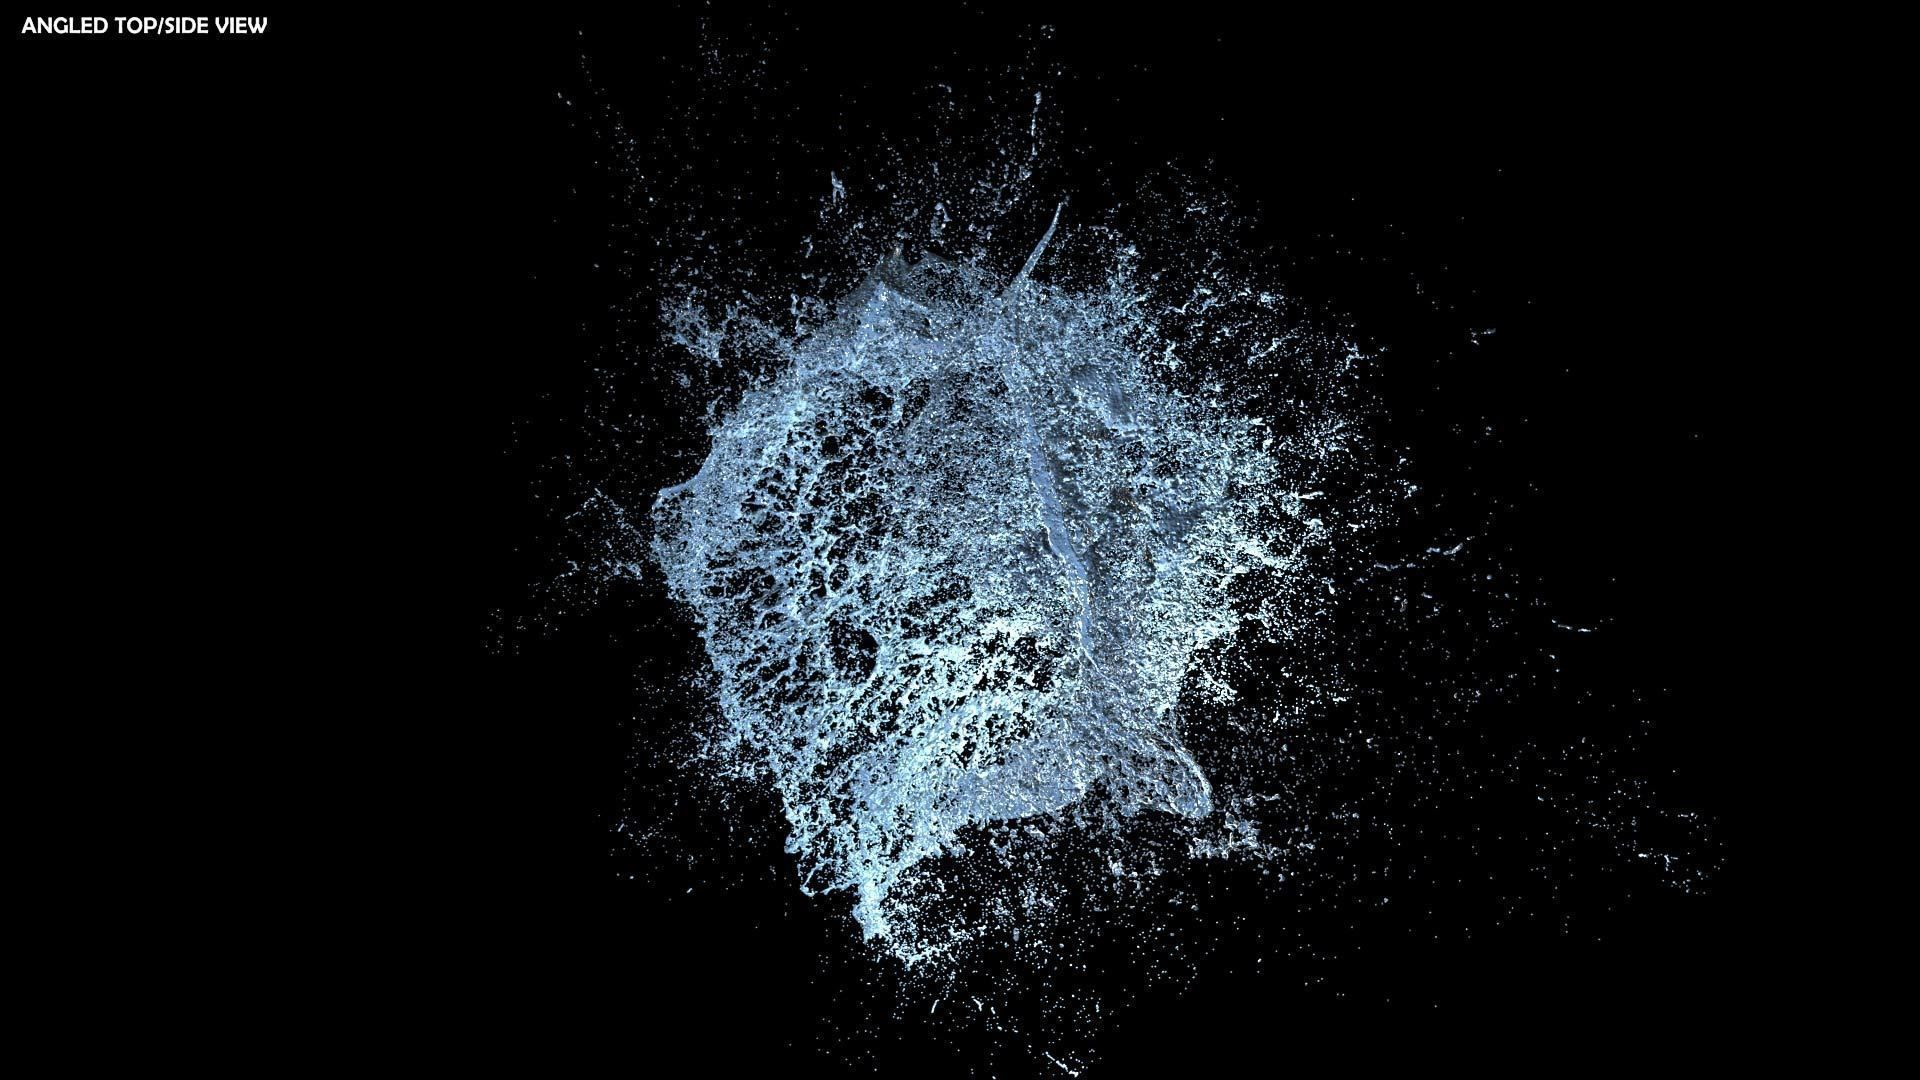 Water Explosion 2